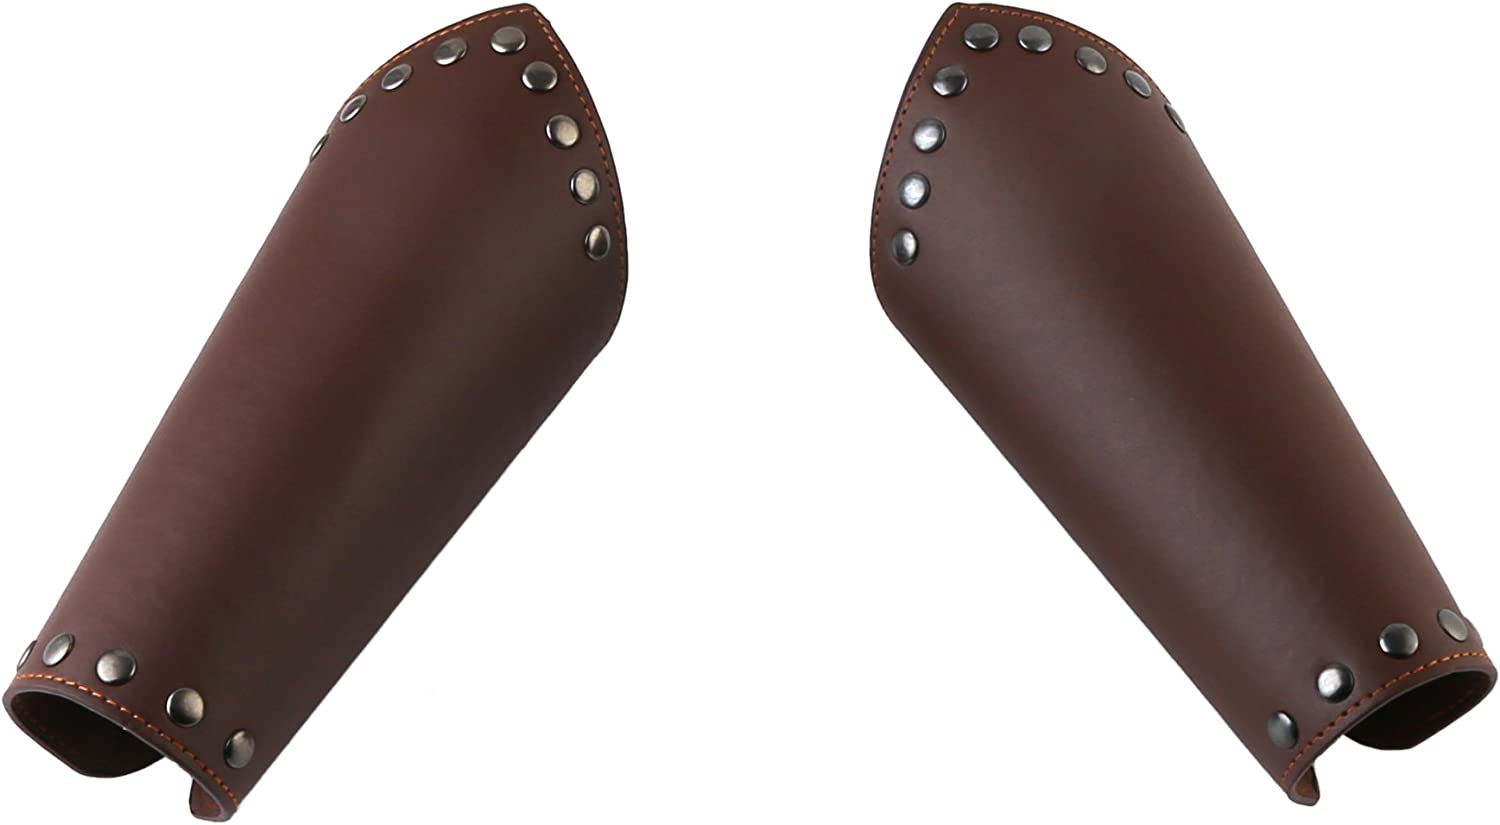 HZMAN Faux Leather Arm Guards - Bracers Siz Cross Medieval One 70% Free Shipping Cheap Bargain Gift OFF Outlet